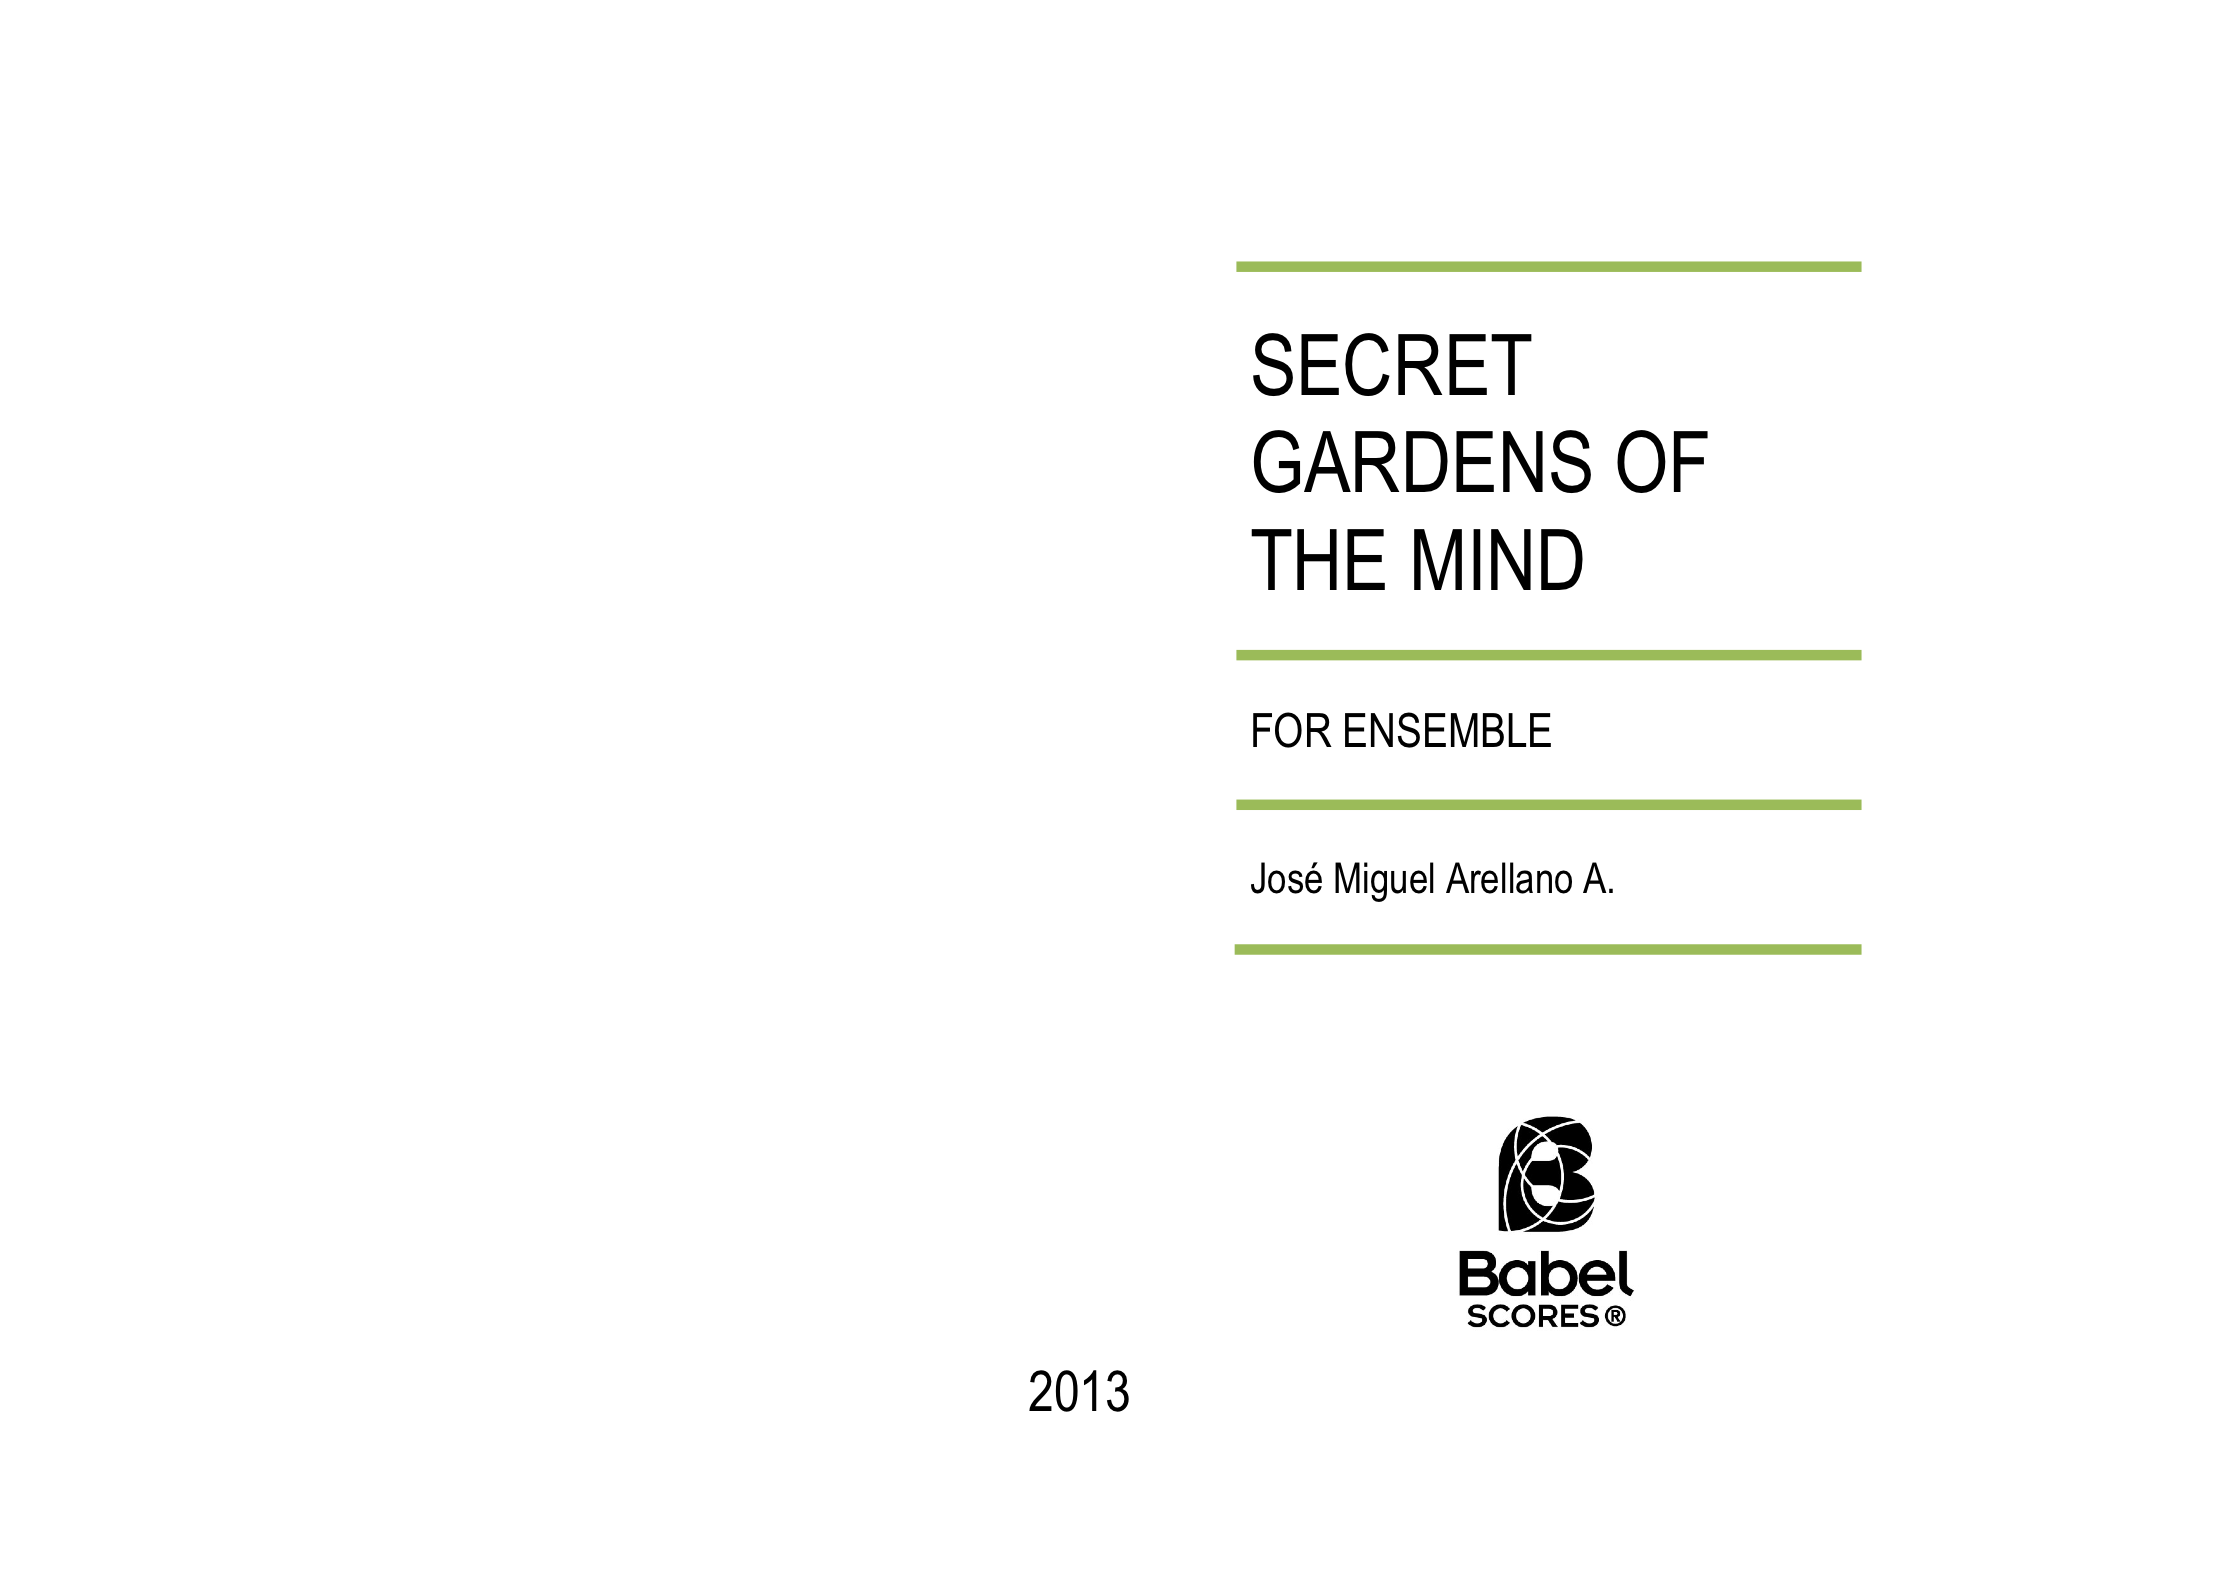 SECRET GARDENS OF THE MIND A4 z